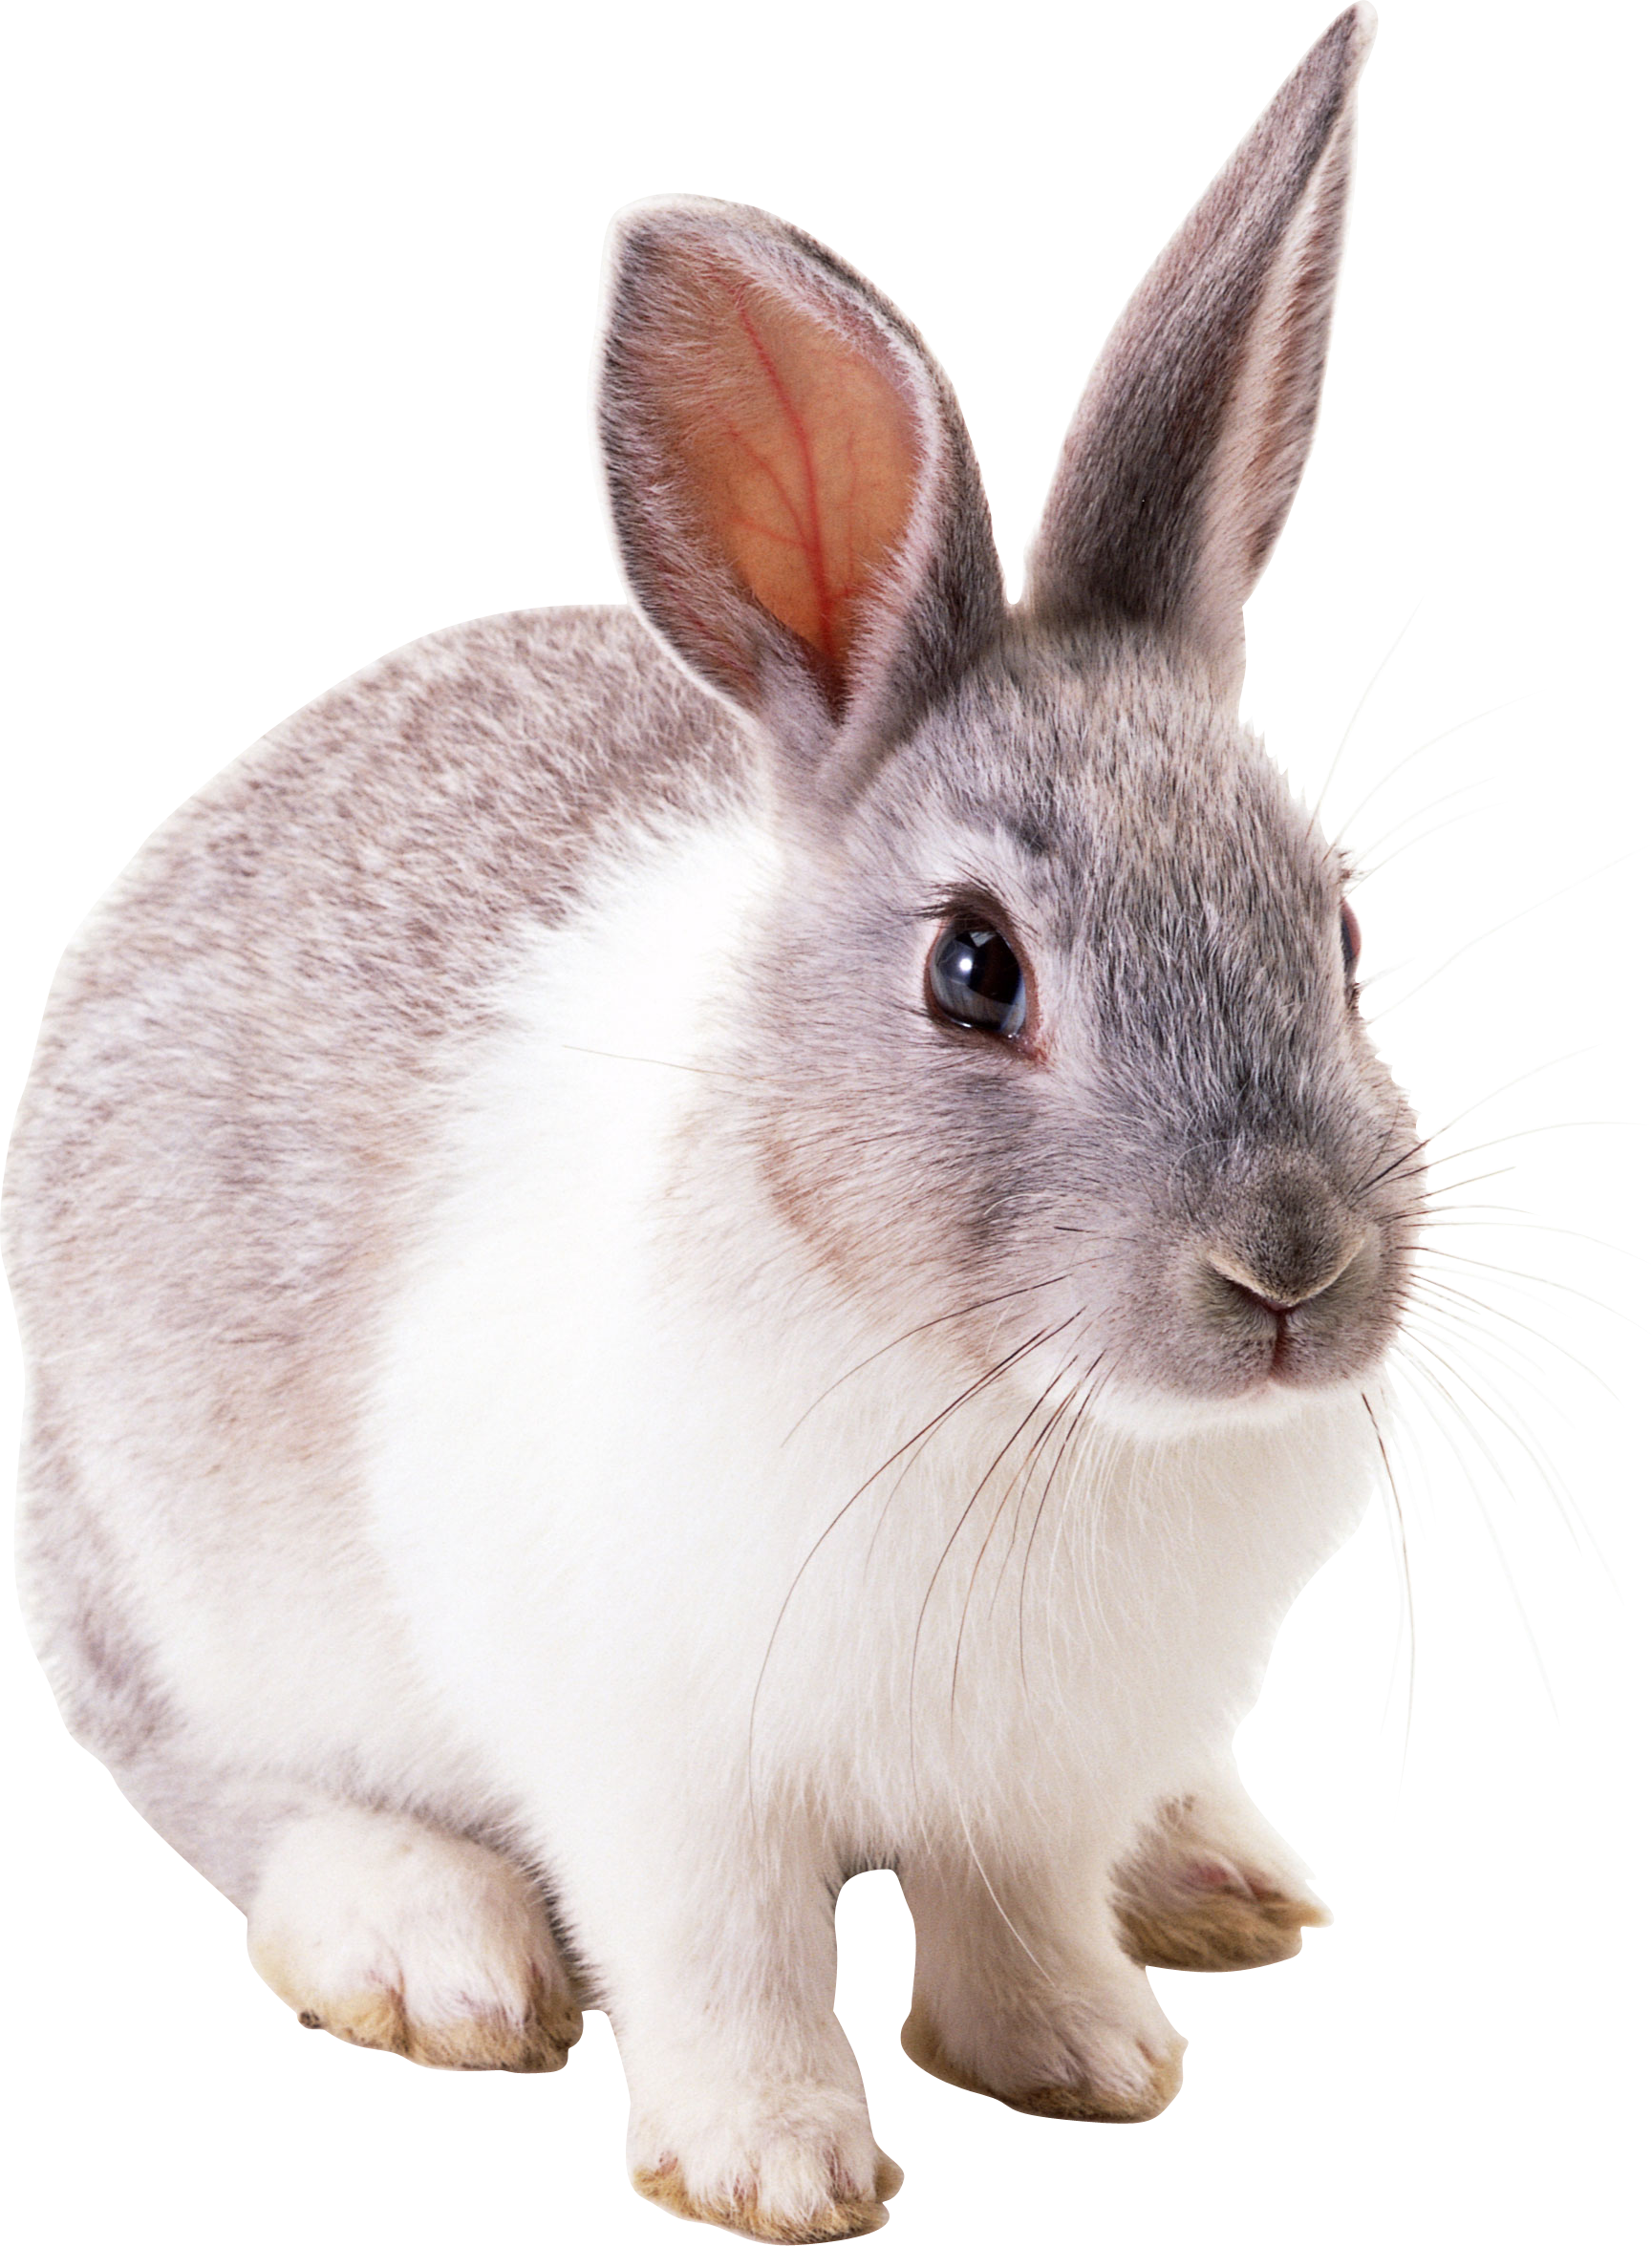 Rabbit png. Images free pictures download